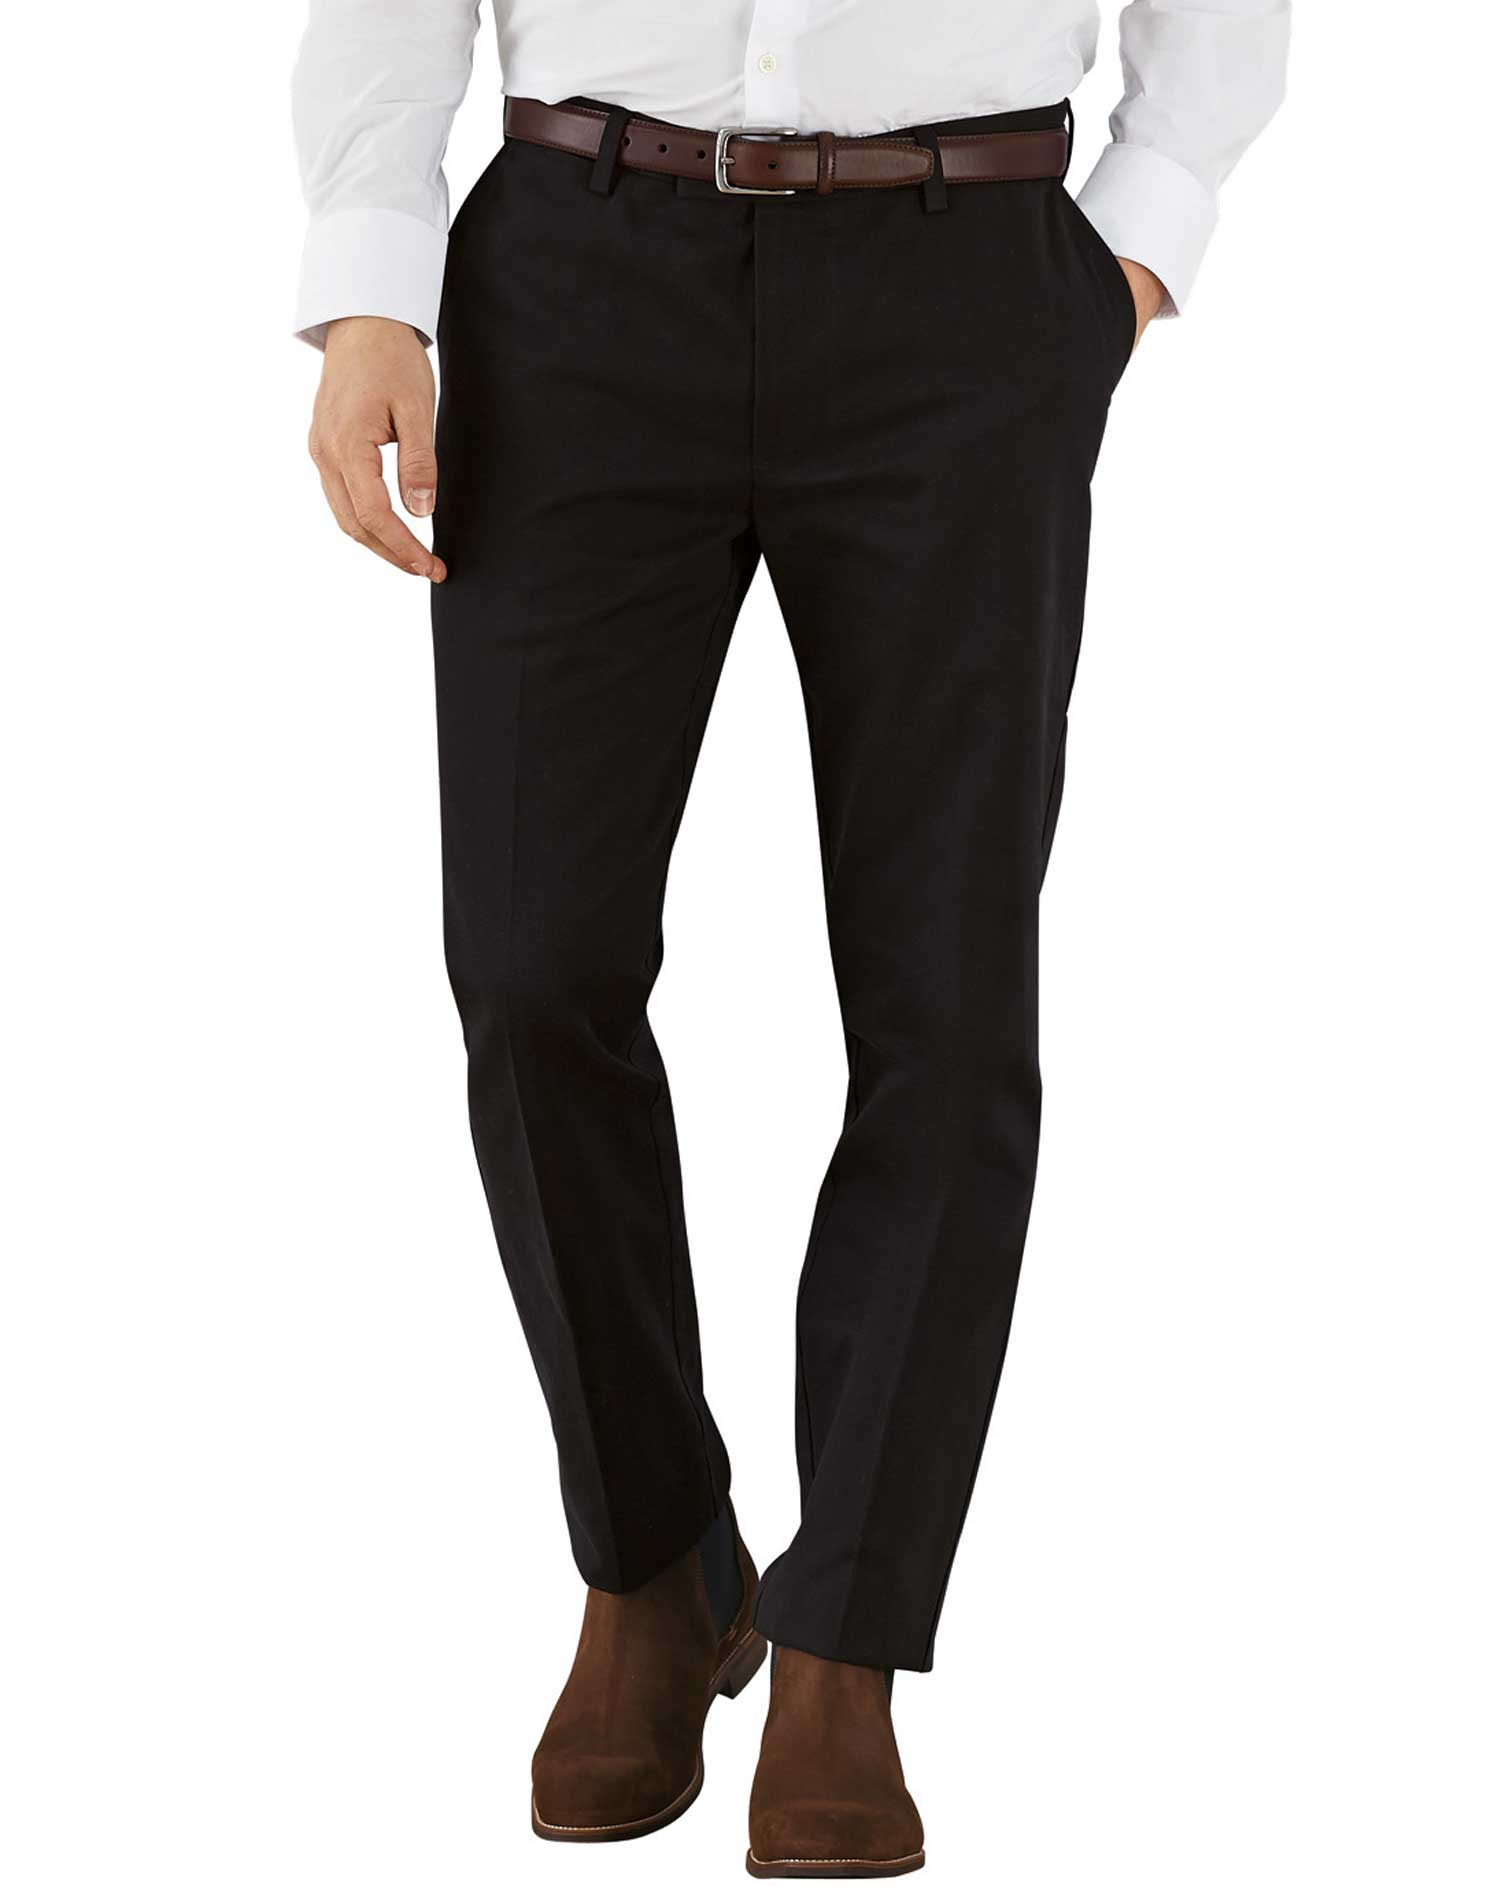 Black Extra Slim Fit Flat Front Non-Iron Cotton Chino Trousers Size W34 L30 by Charles Tyrwhitt